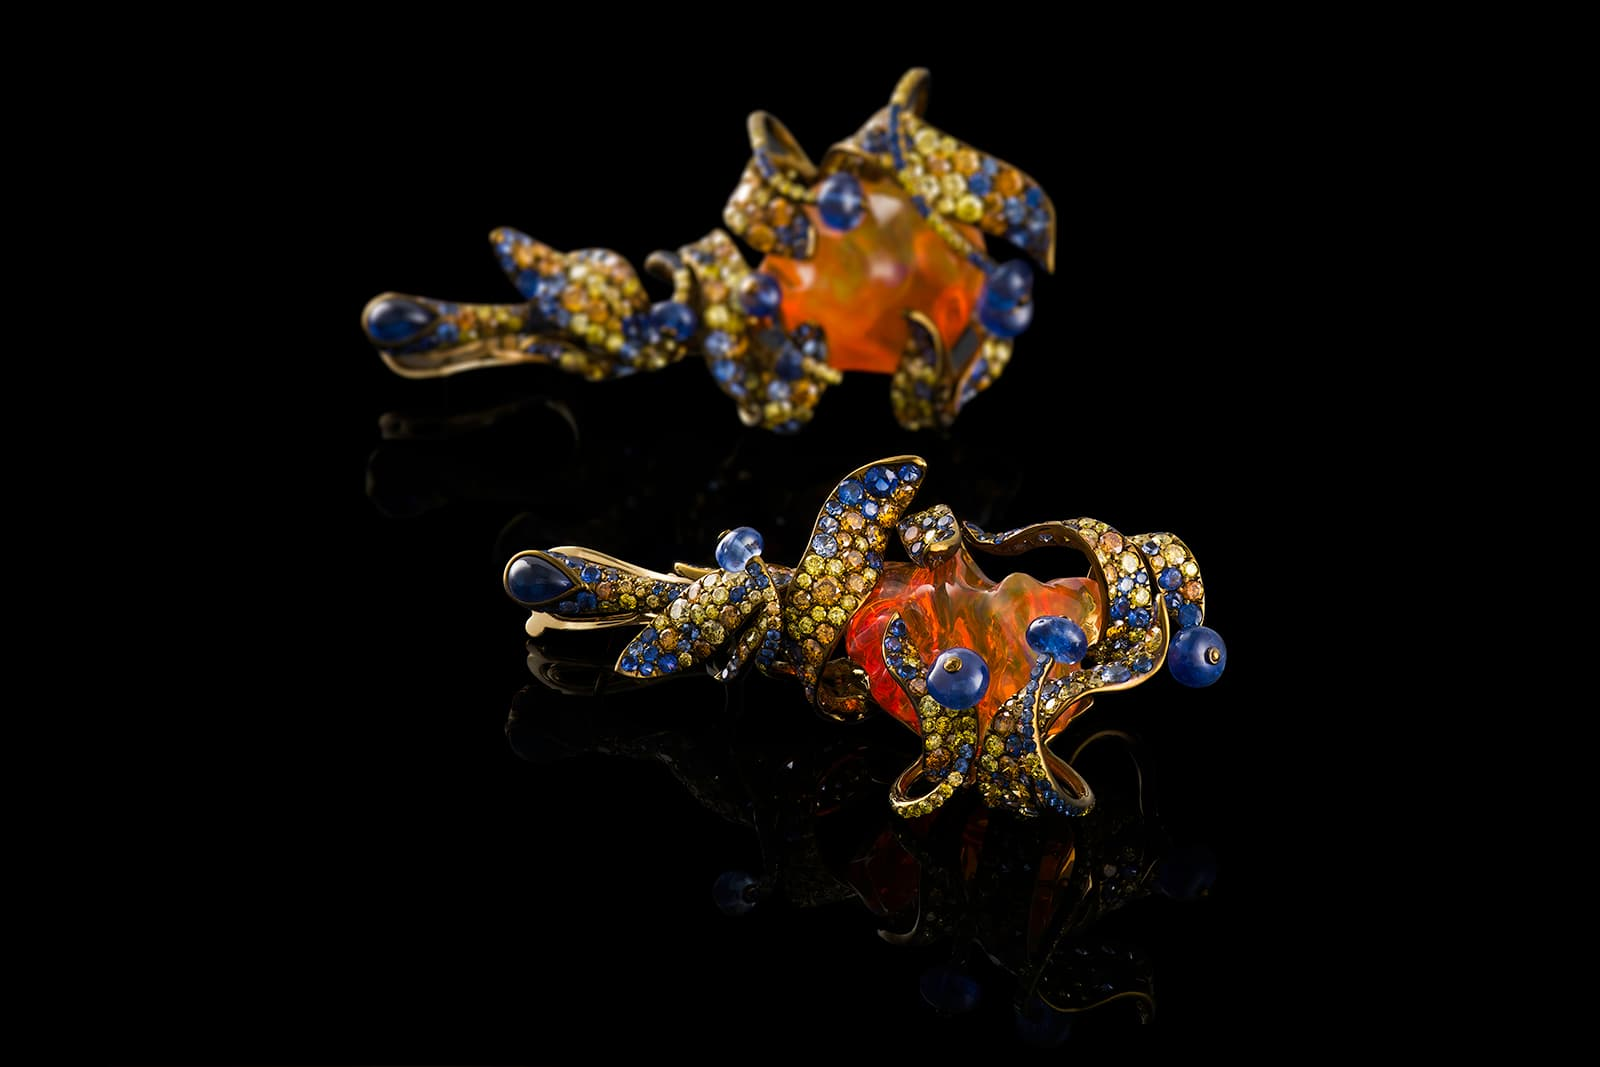 Neha Dani 'Shristi' collection 'Arunima' earrings with fire opal, sapphires, yellow and orange diamonds in titanium